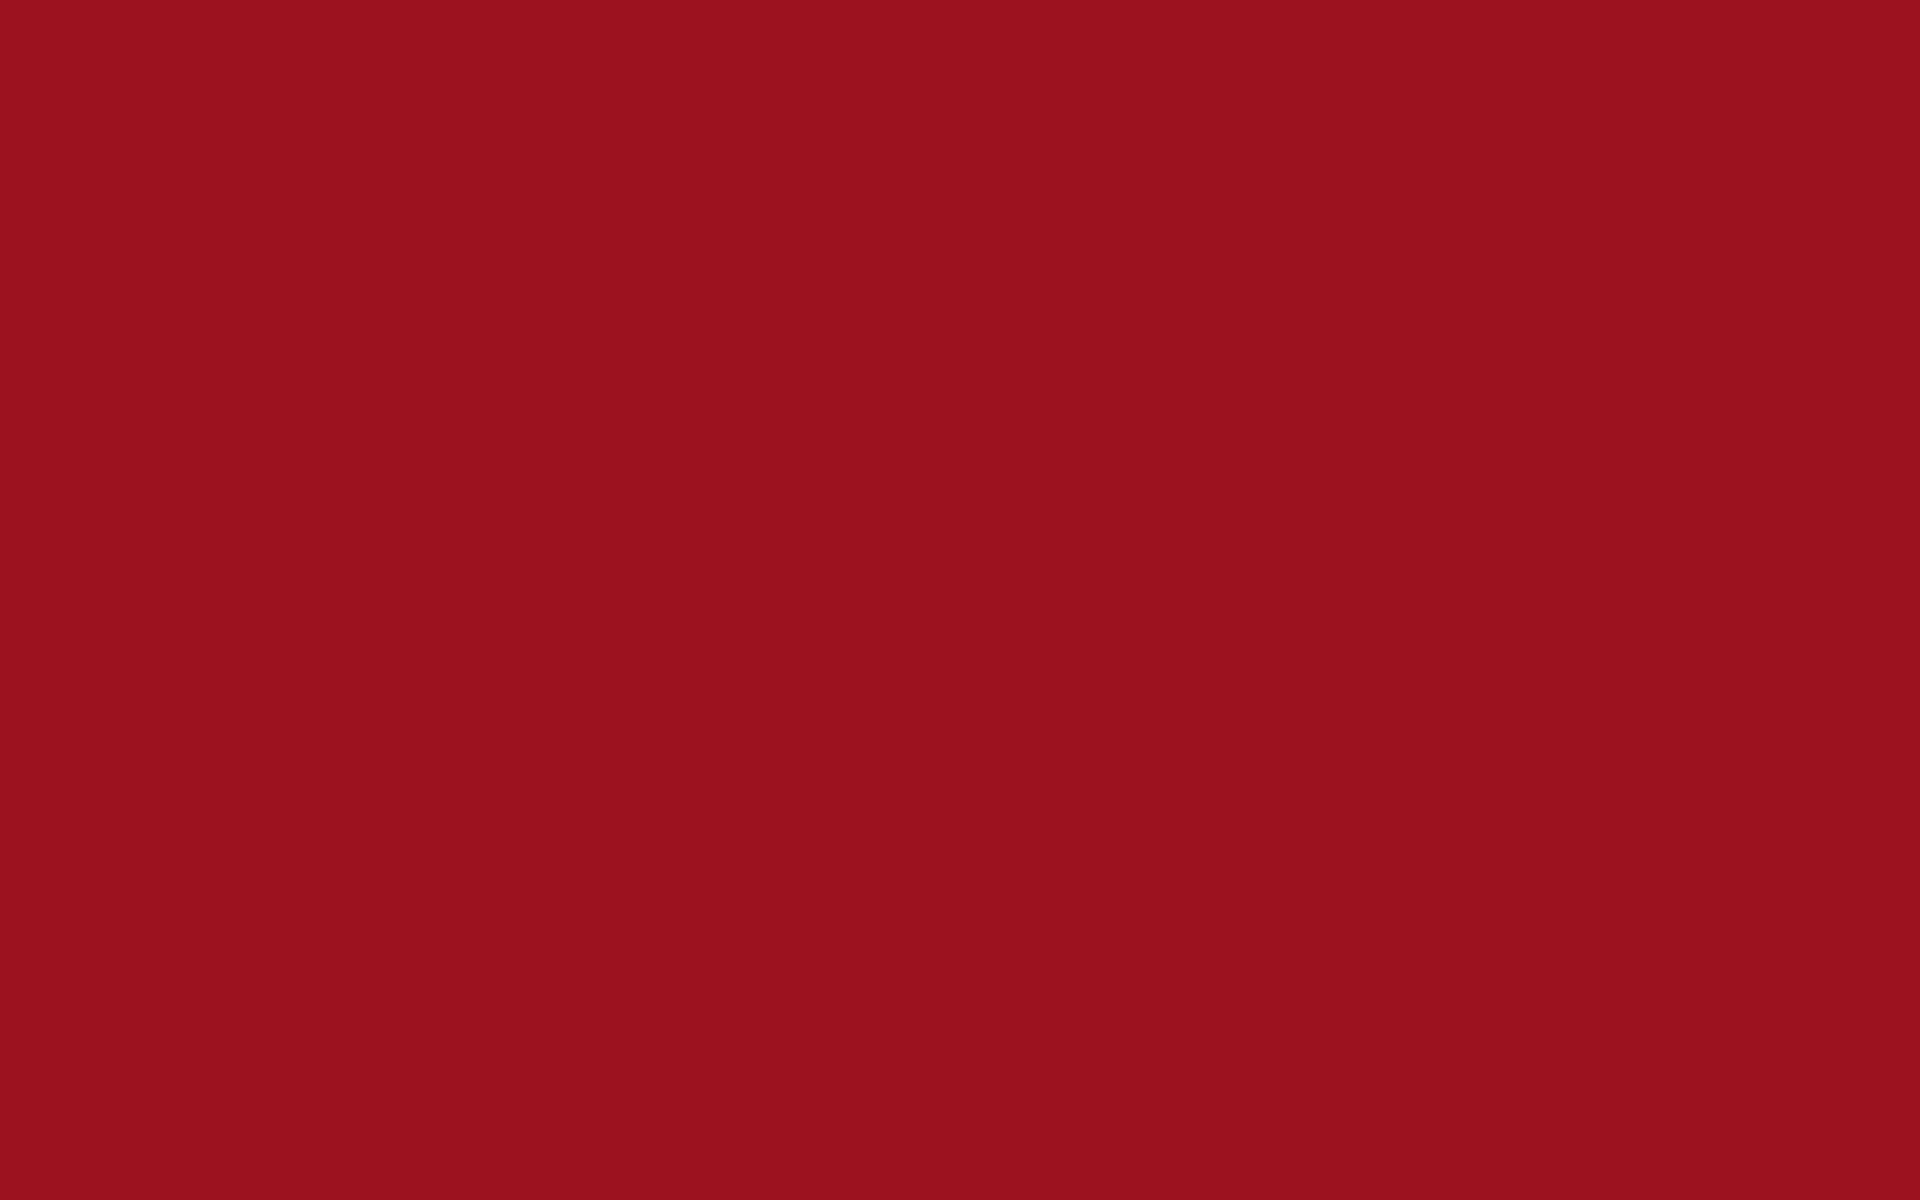 1920x1200 Ruby Red Solid Color Background